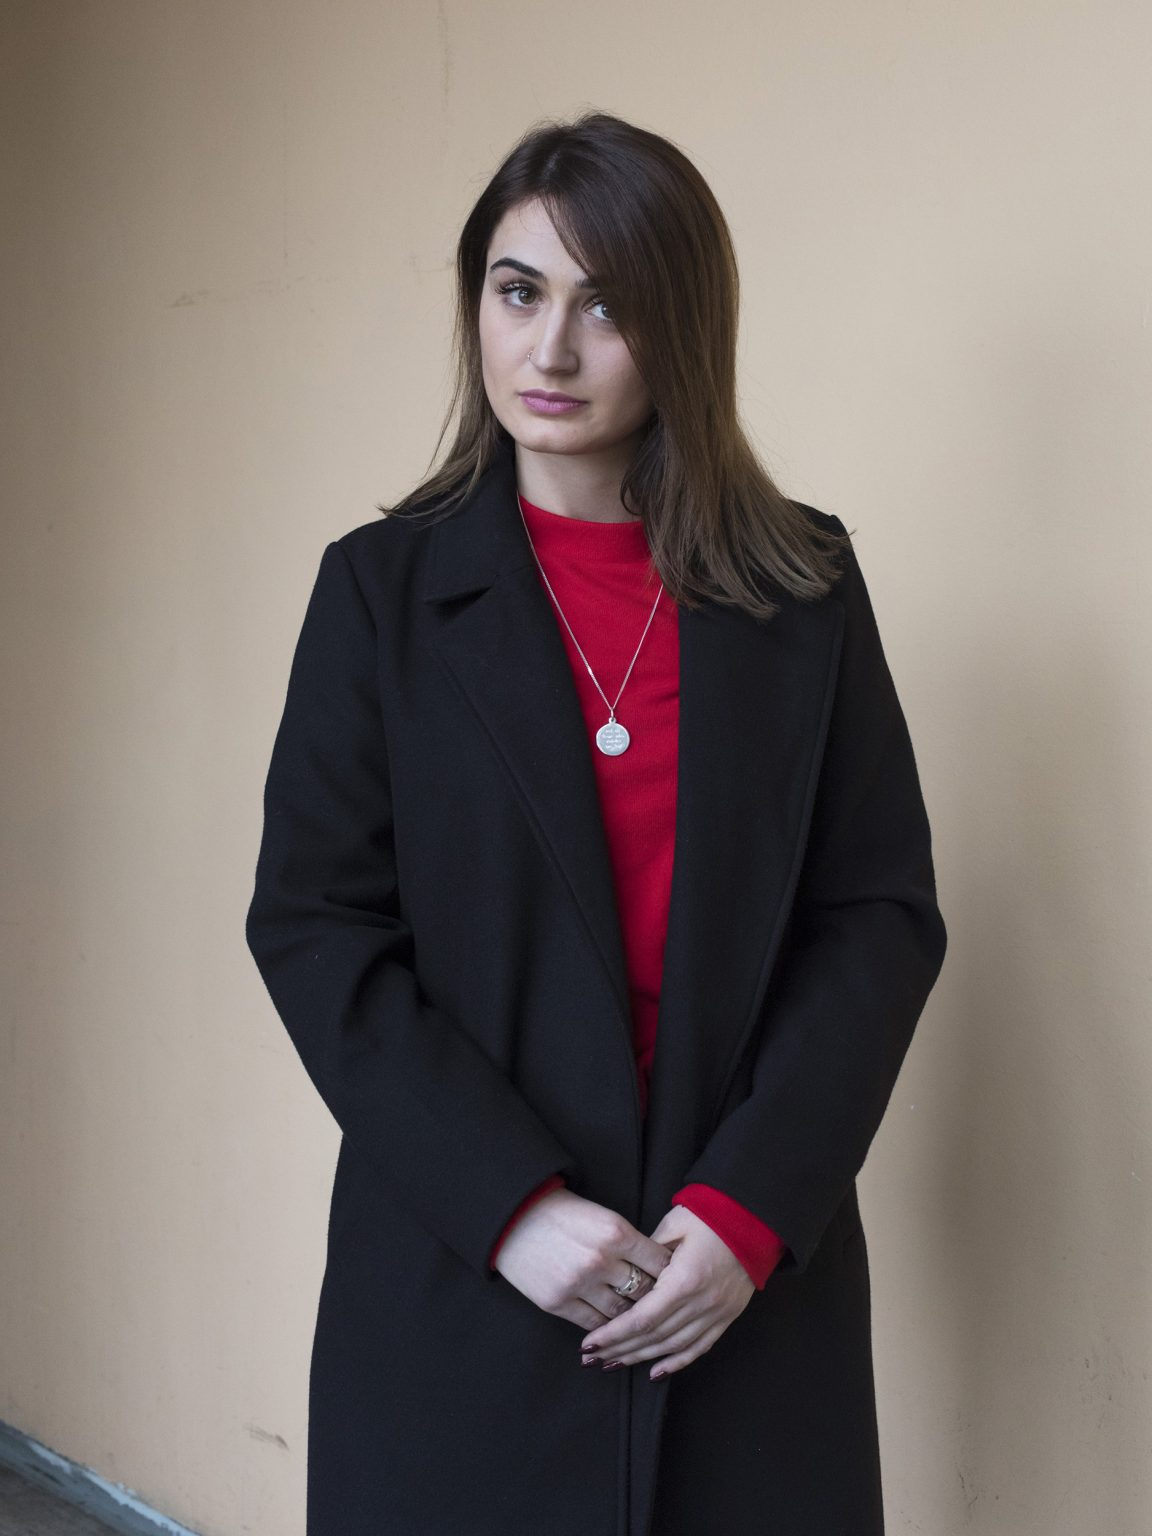 Portrait of Venera Poteri, law student, employed at the polling station n. 26 in the Linguistic faculty of Prishtina / Priština during the ballot vote for the election of the new mayor.